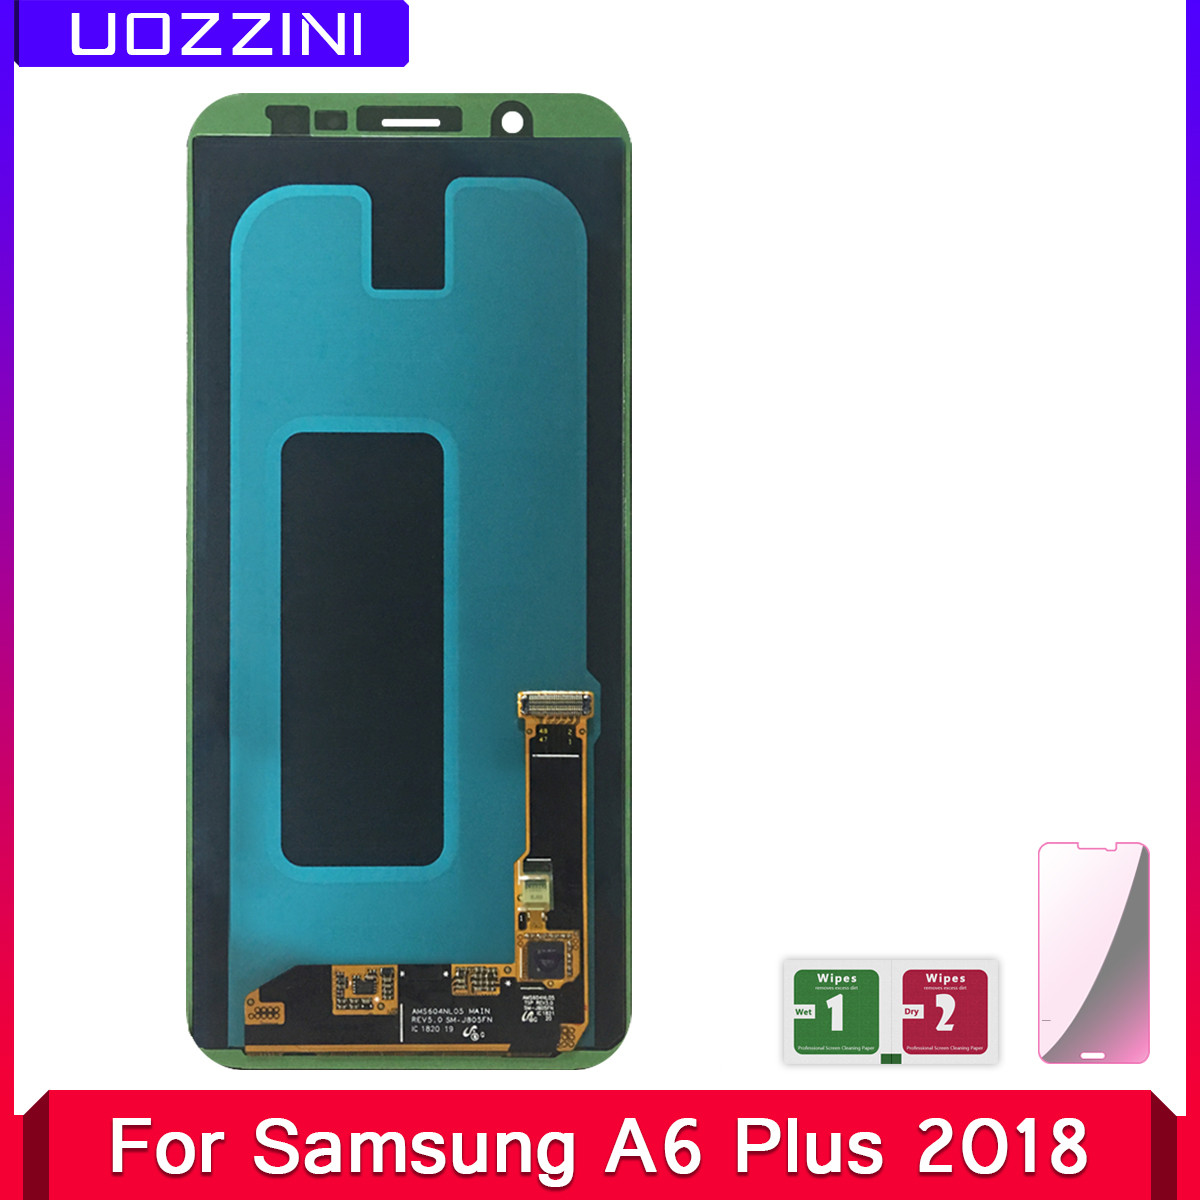 2 Pcs Super AMOLED Lcds For Samsung A6 Plus 2018 A605 For Samsung A6 Plus 2018 Display Touch Screen Digitizer Assembly